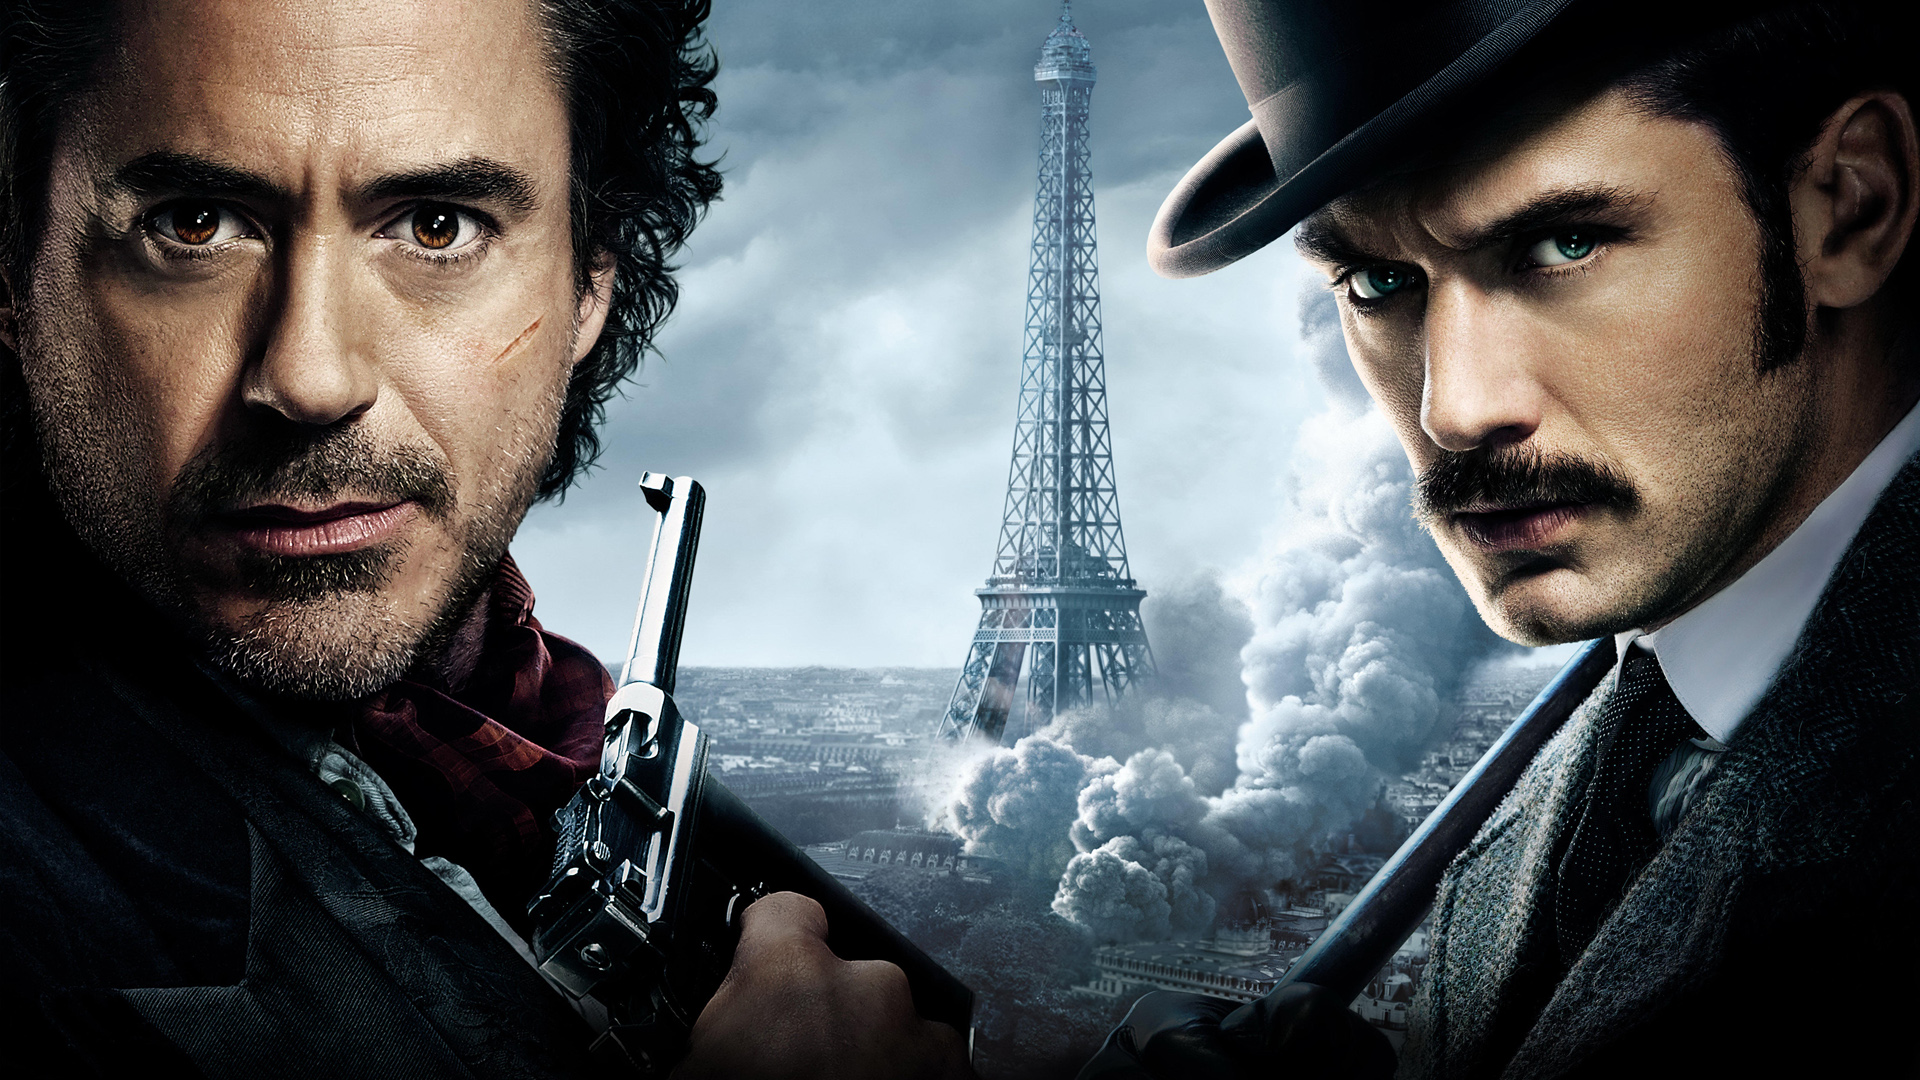 Free Download Sherlock Holmes Wallpaper Hd 1920x1080 For Your